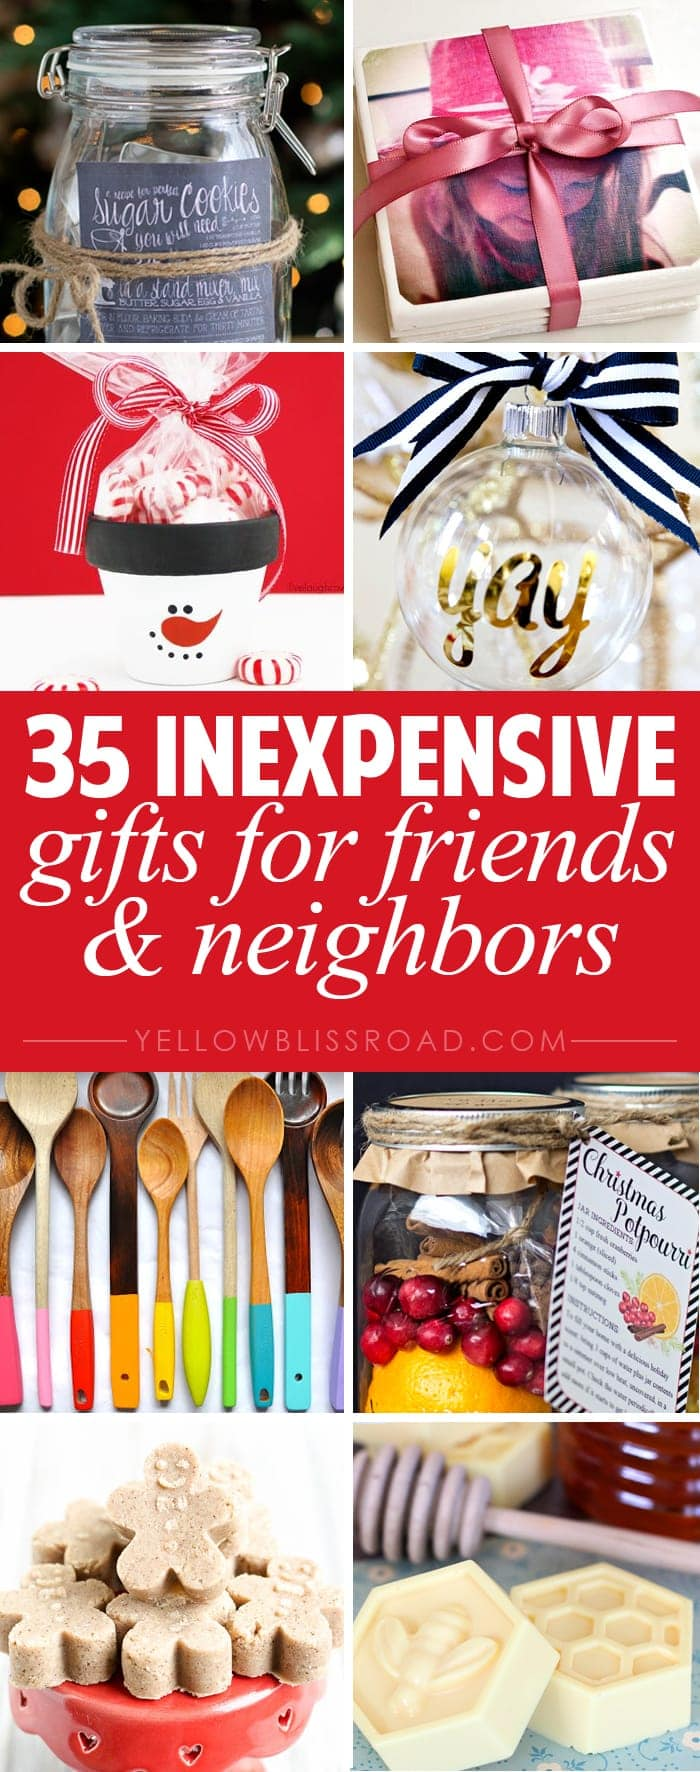 35 inexpensive gifts for friends neighbors